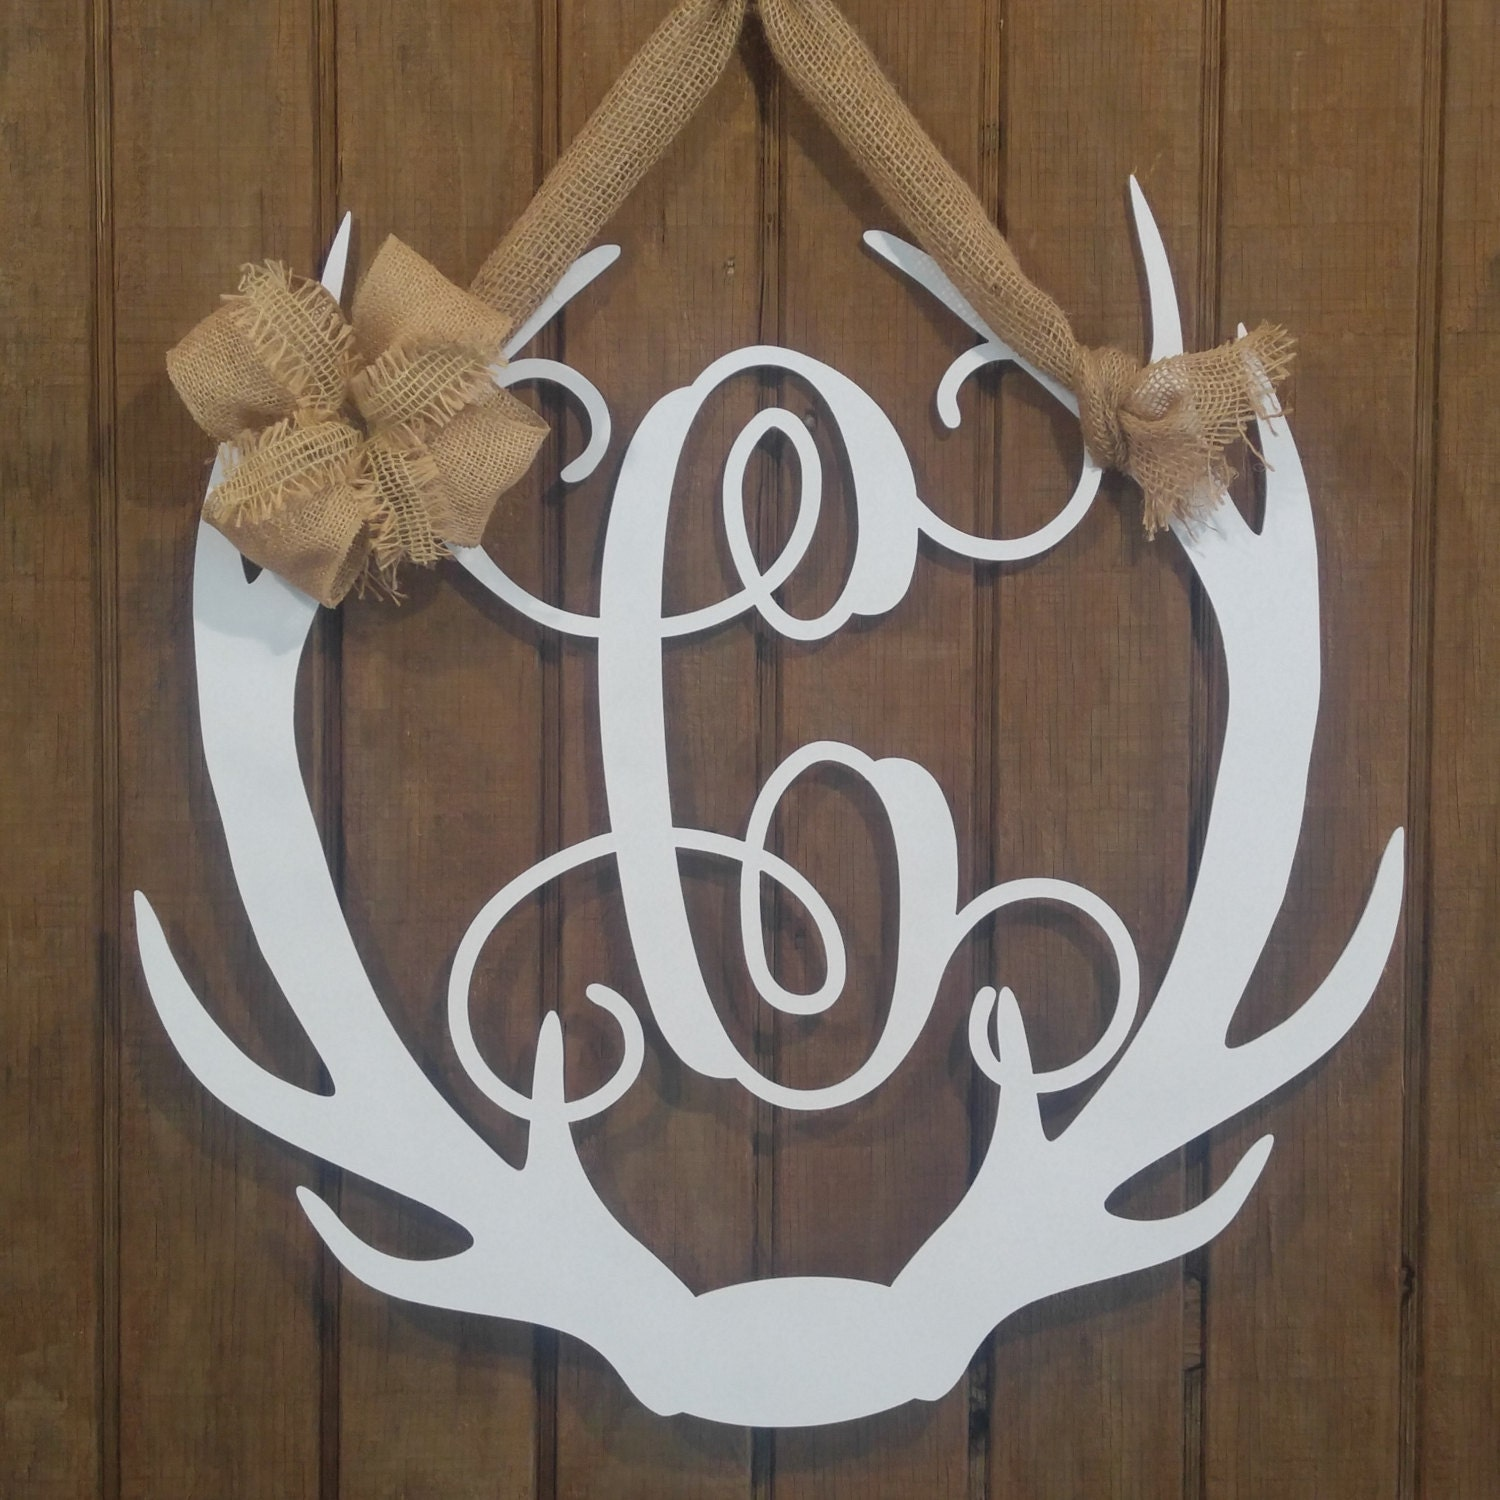 Antler Wreath, Door Hangers, Antler Decor, Antler Door Hanger, Antler  Monograms, Hunting, Monogram Door Sign, Deer Decor, Front Door Decor,